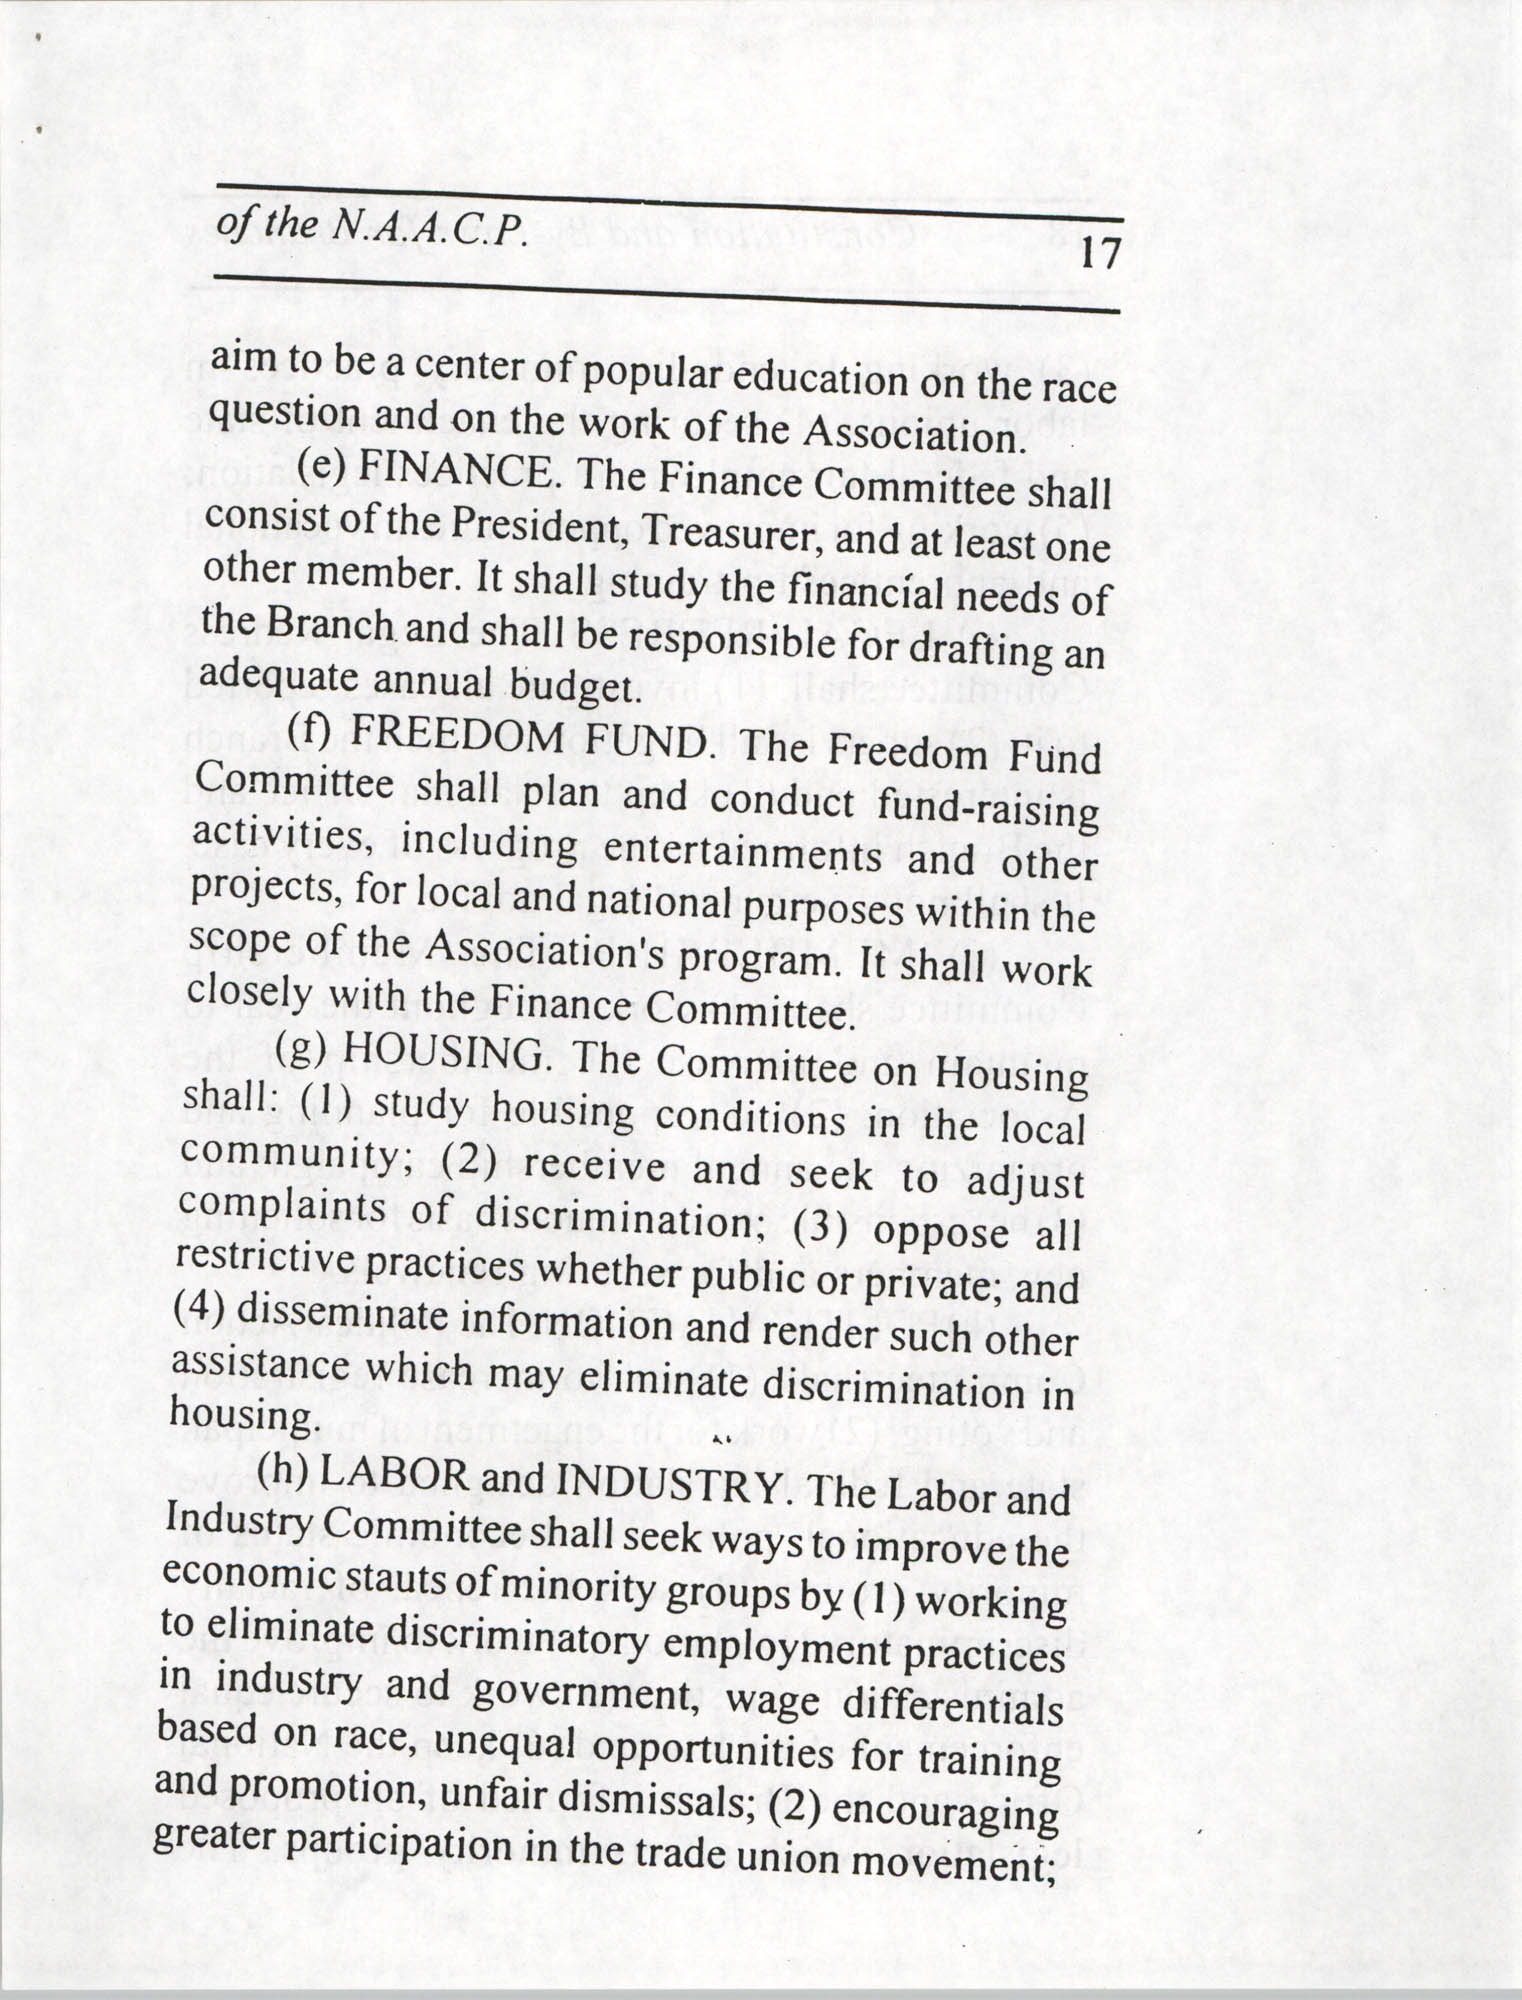 Constitution and By-Laws for Branches of the NAACP, July 1994, Page 17